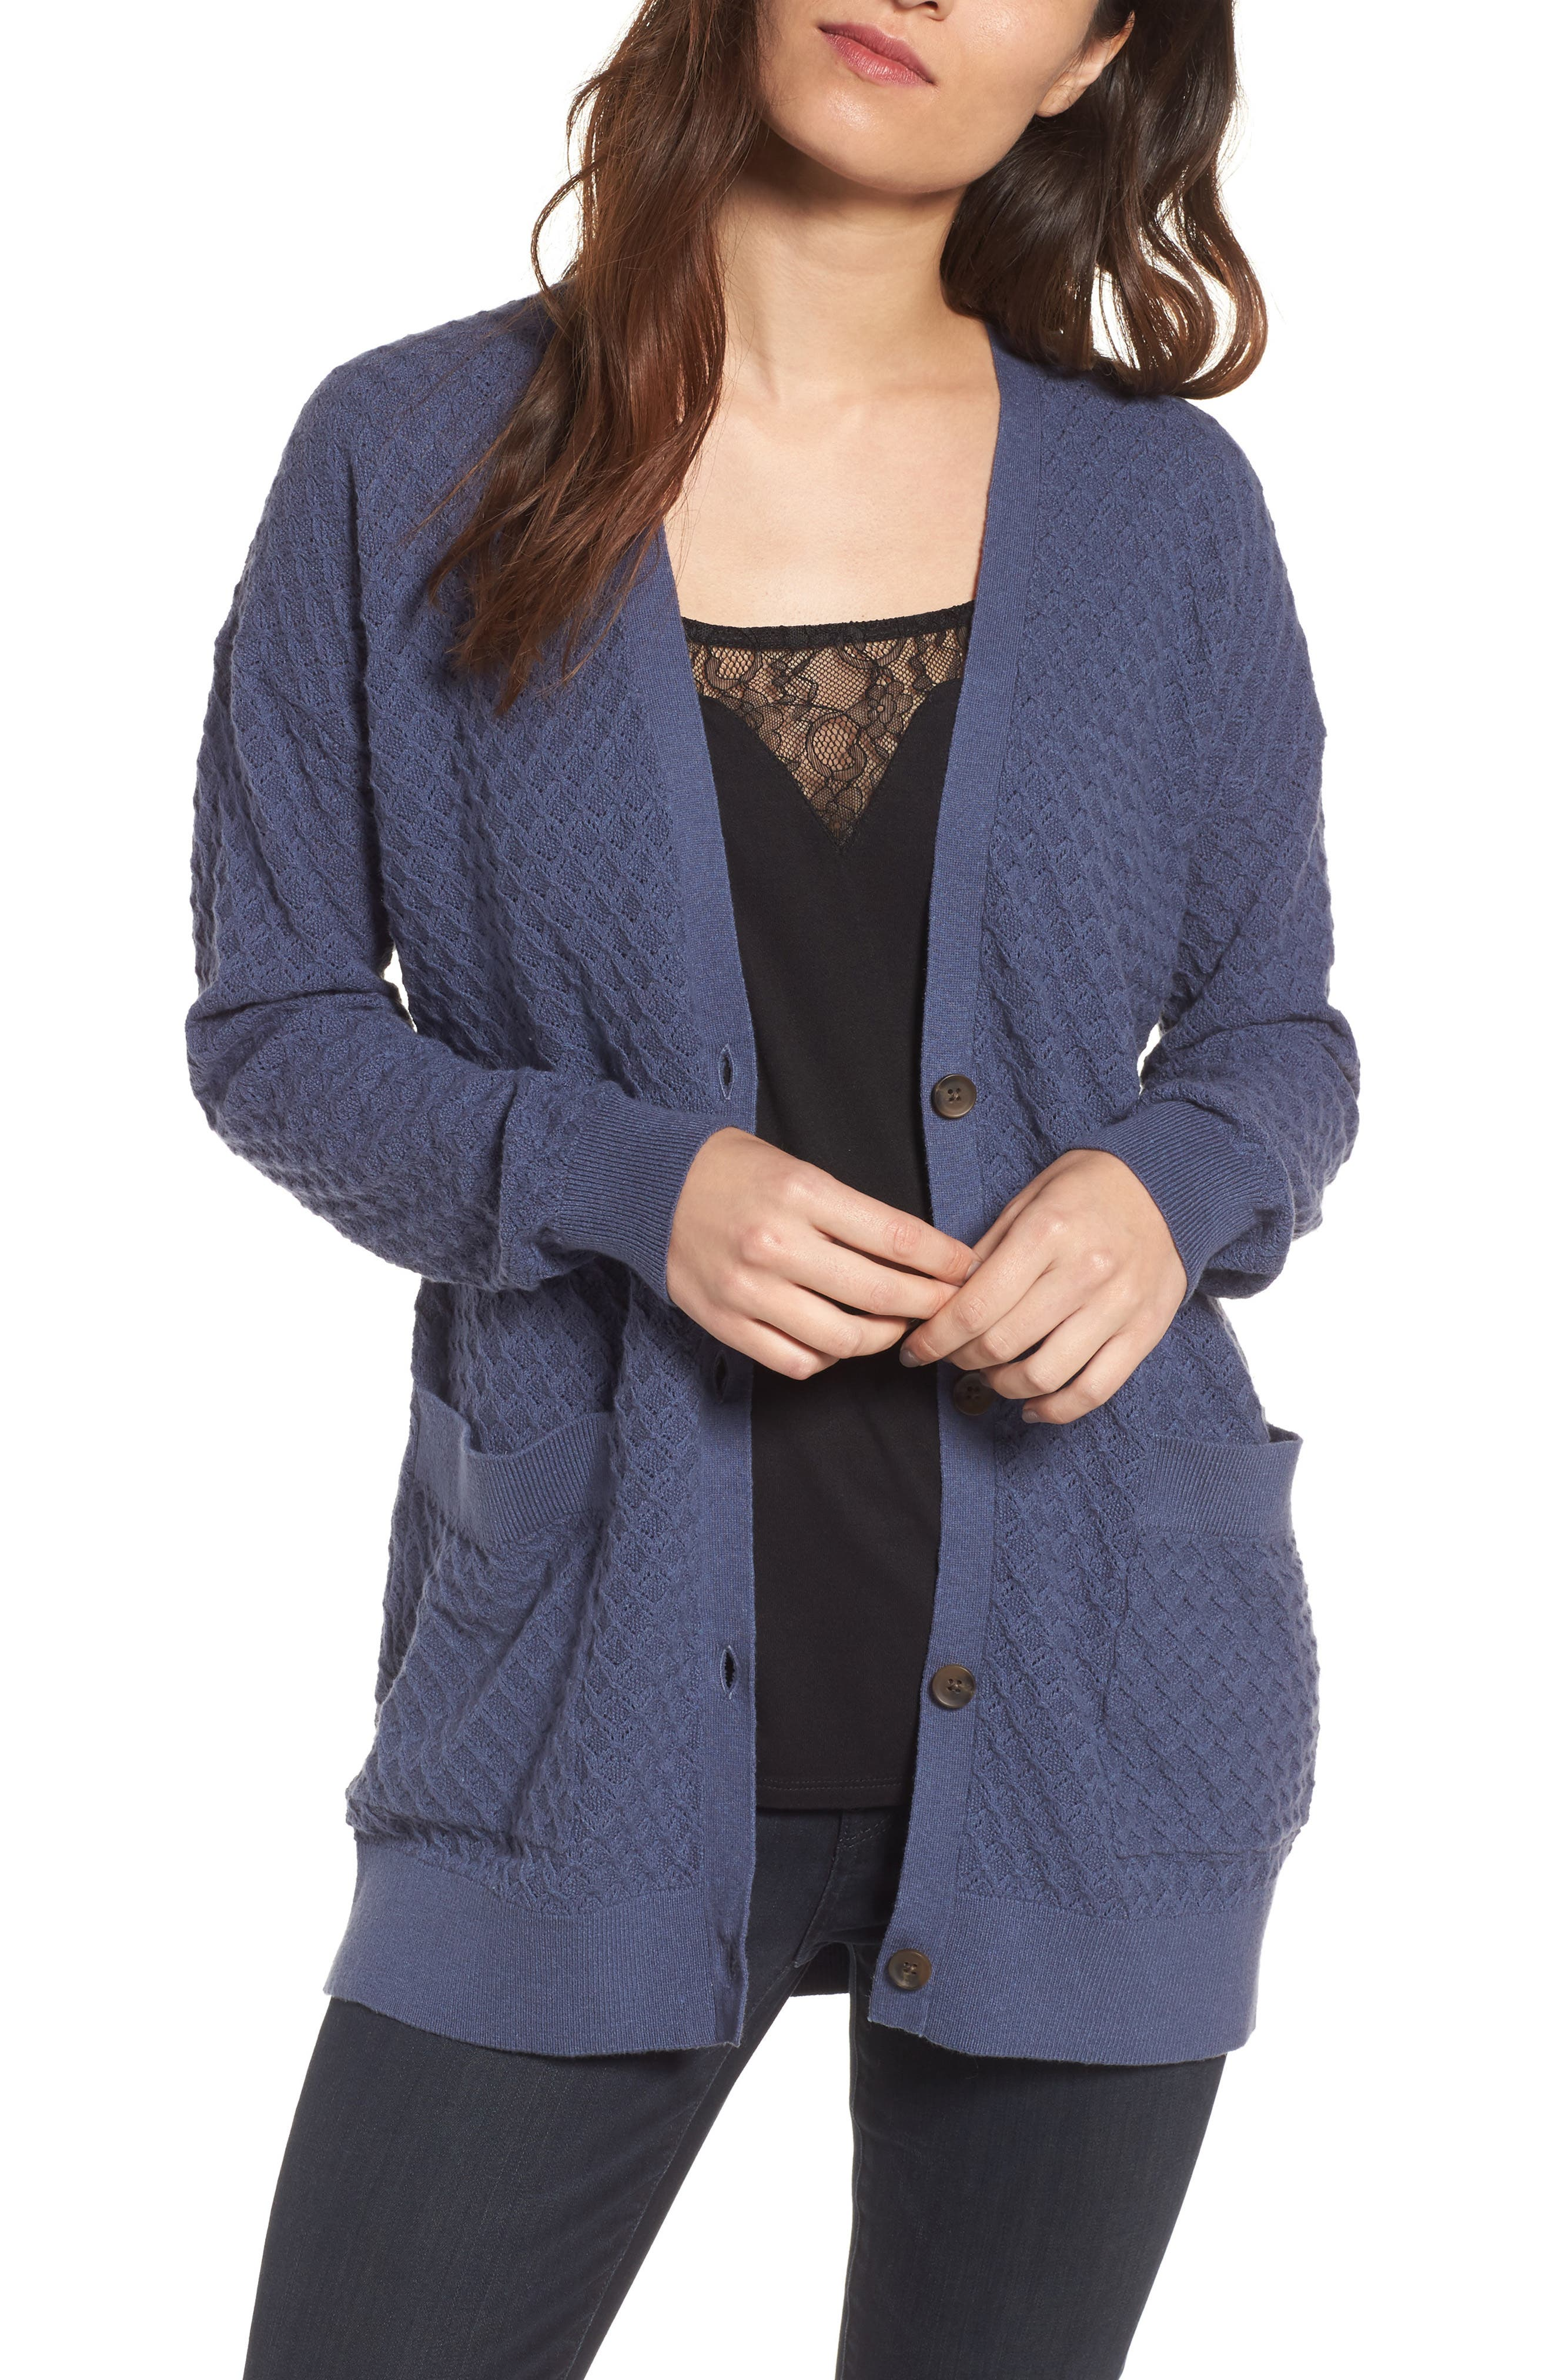 Pointelle Cardigan Sweater,                             Main thumbnail 3, color,